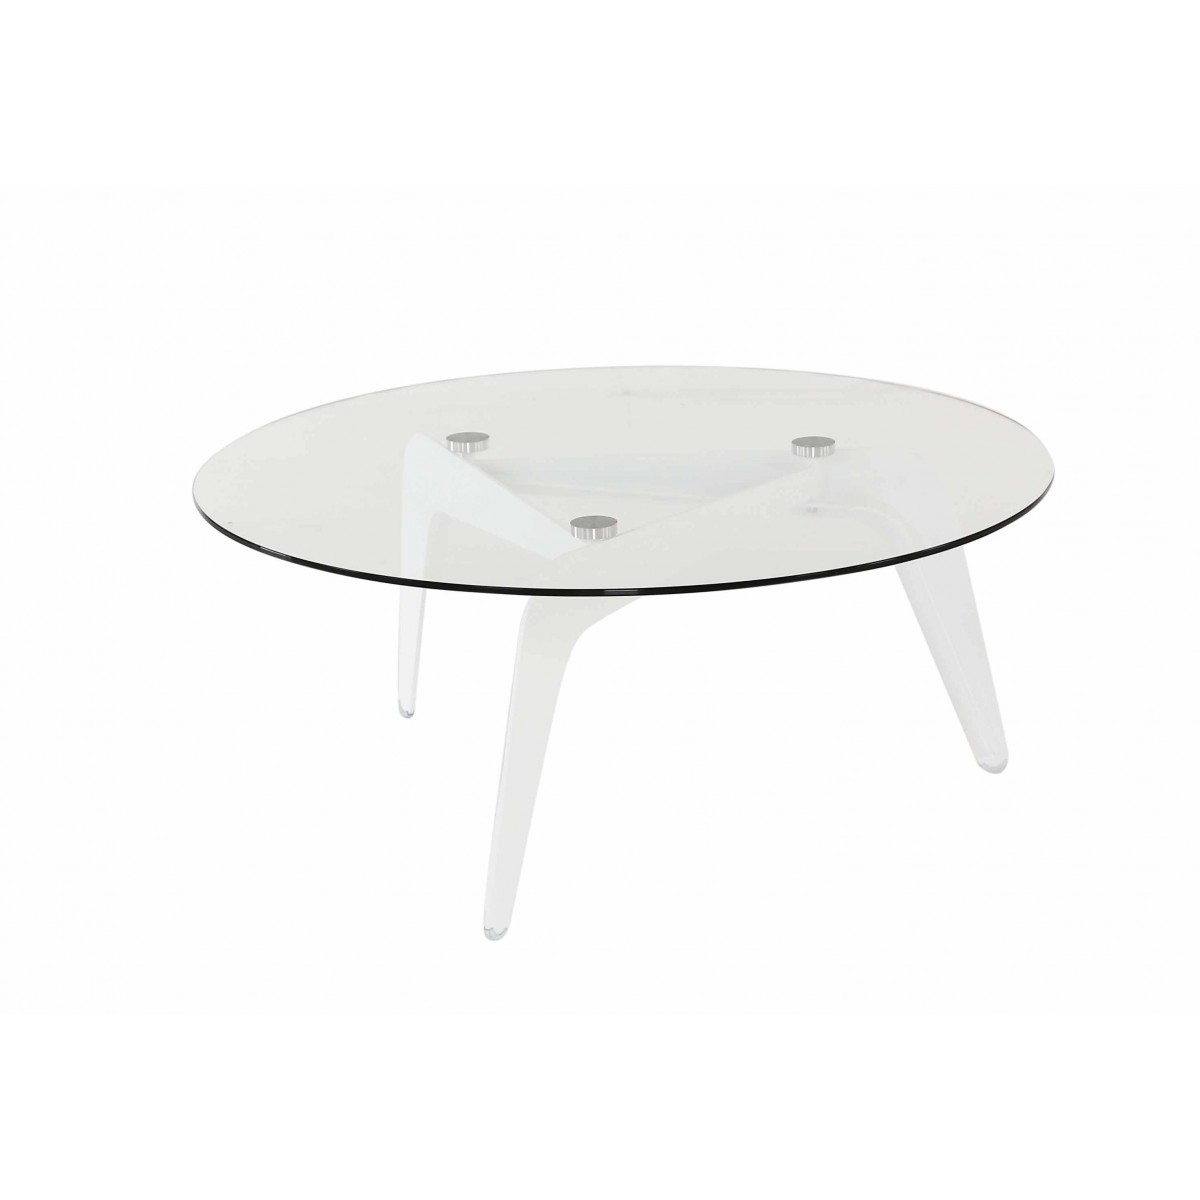 Table basse ronde en verre design mooviin for Table basse ronde verre